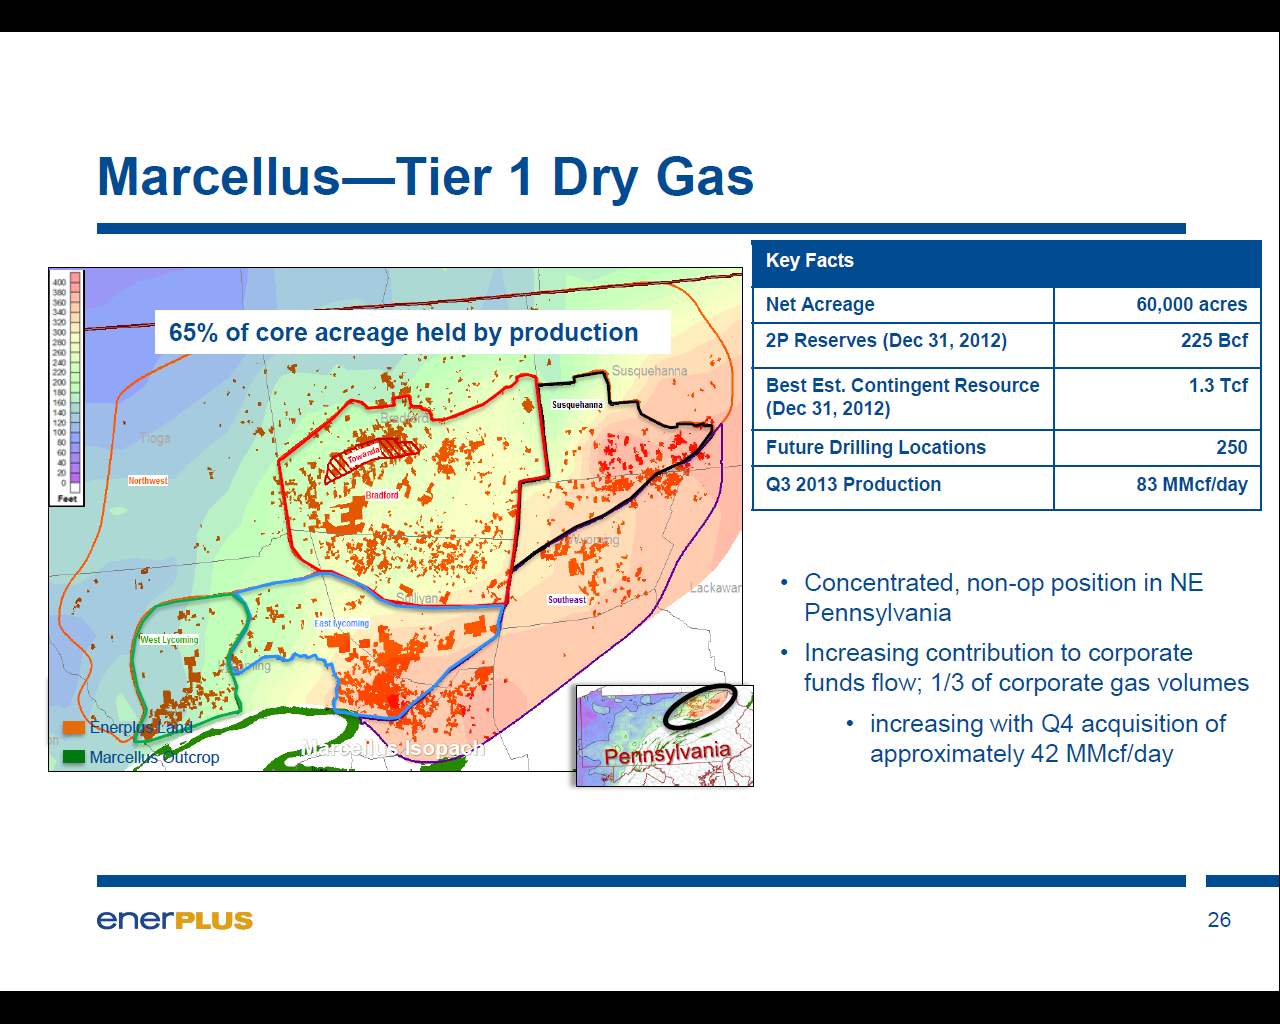 Canadian Driller Enerplus Marcellus Shale Stats